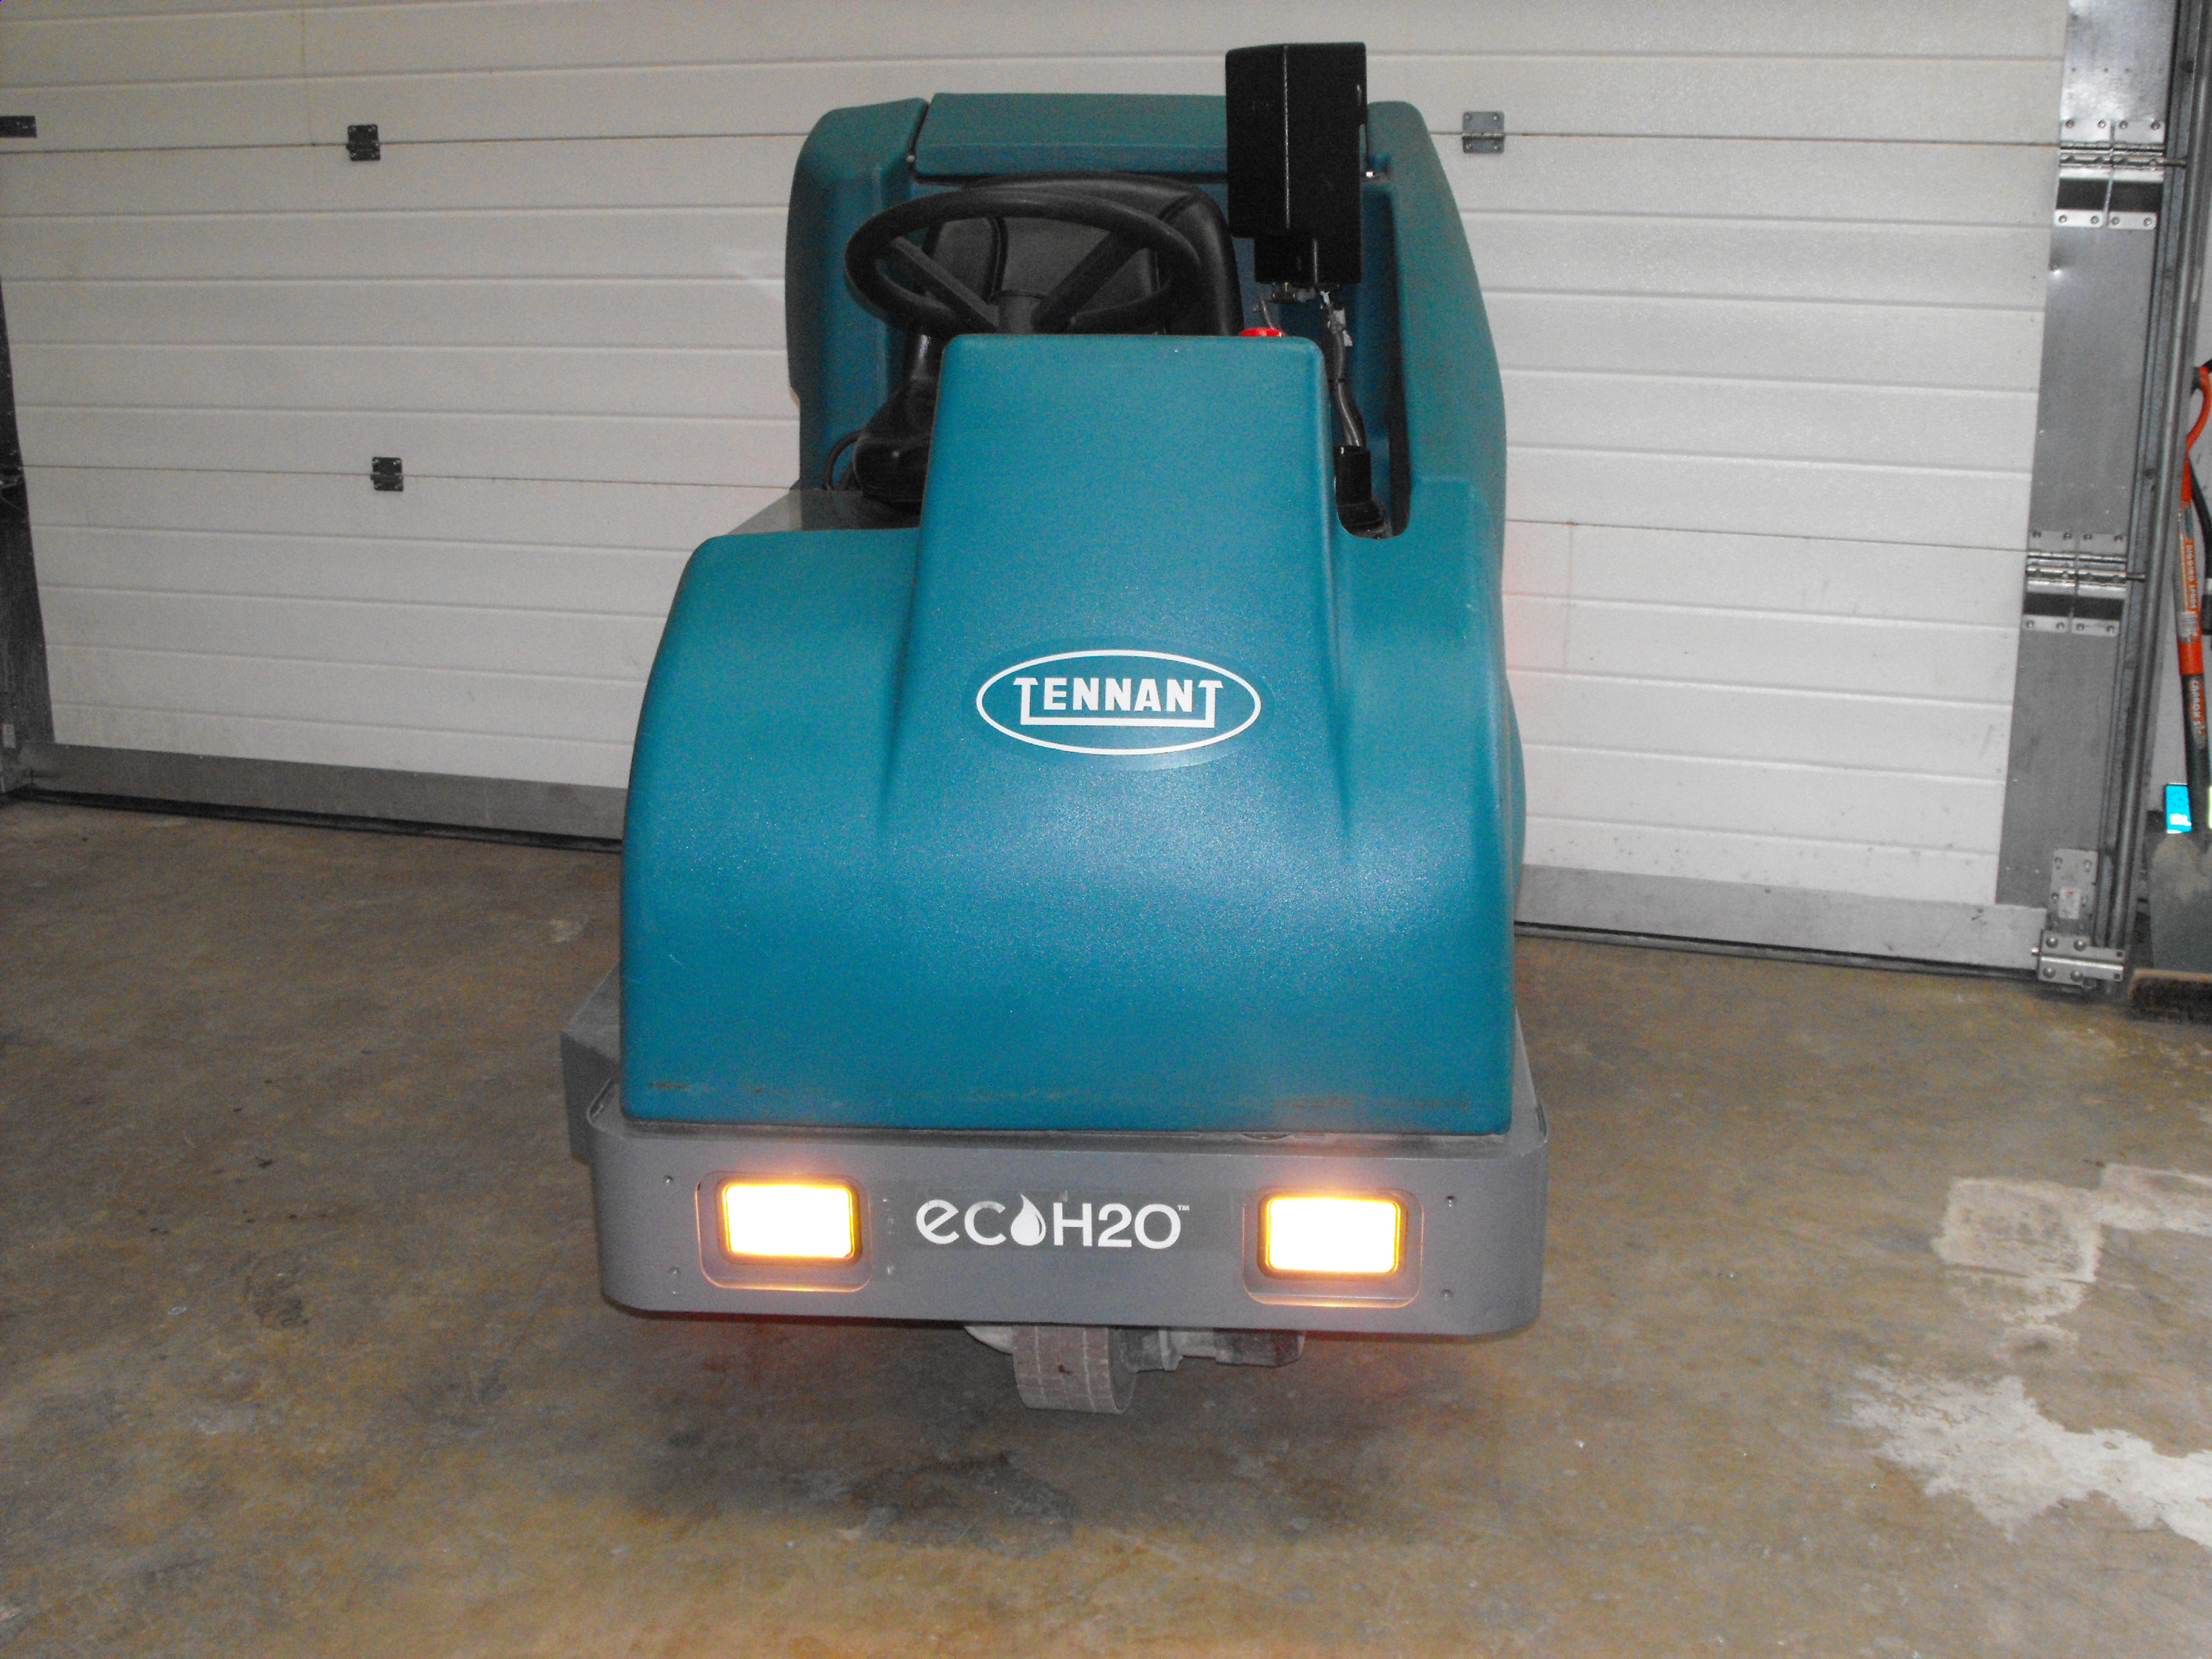 Carpet Cleaning Machines Second Hand